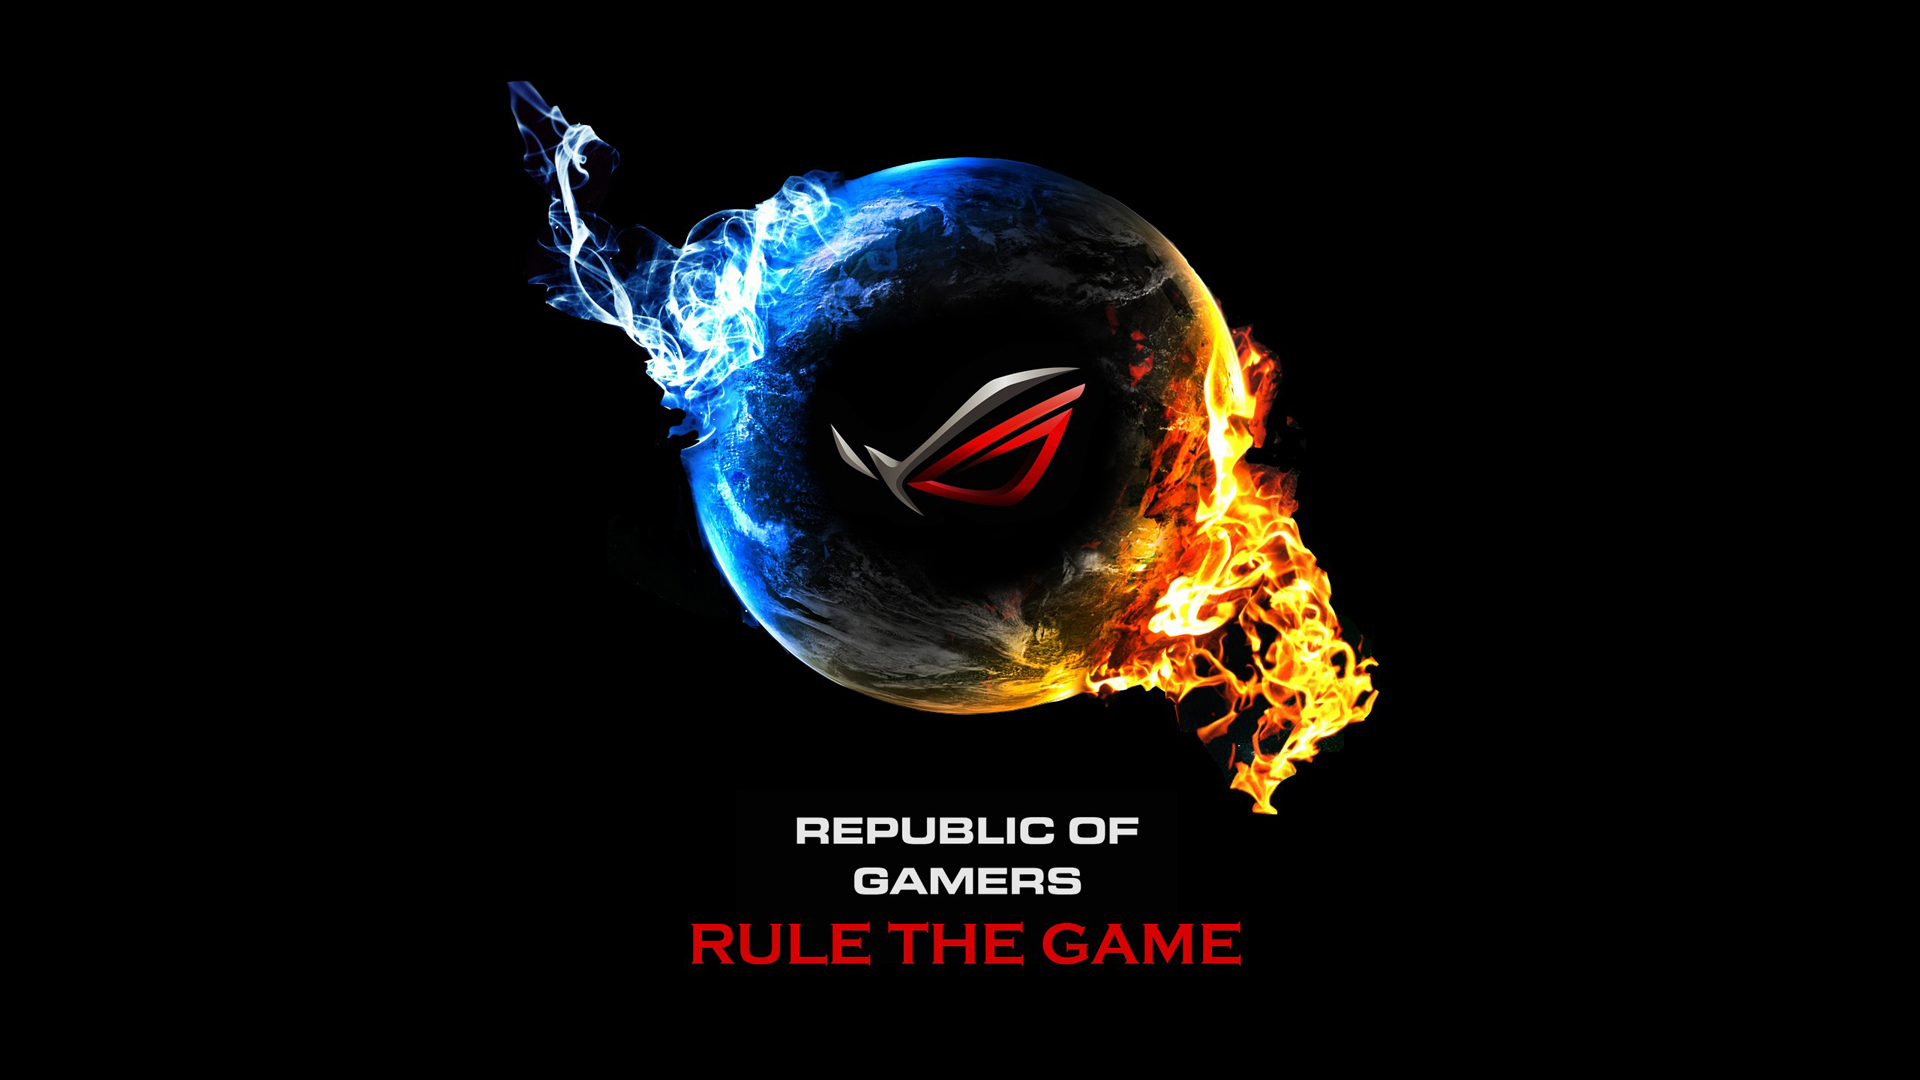 asus rog republic of gamers blue and red flame earth logo 1920x1080 1920x1080